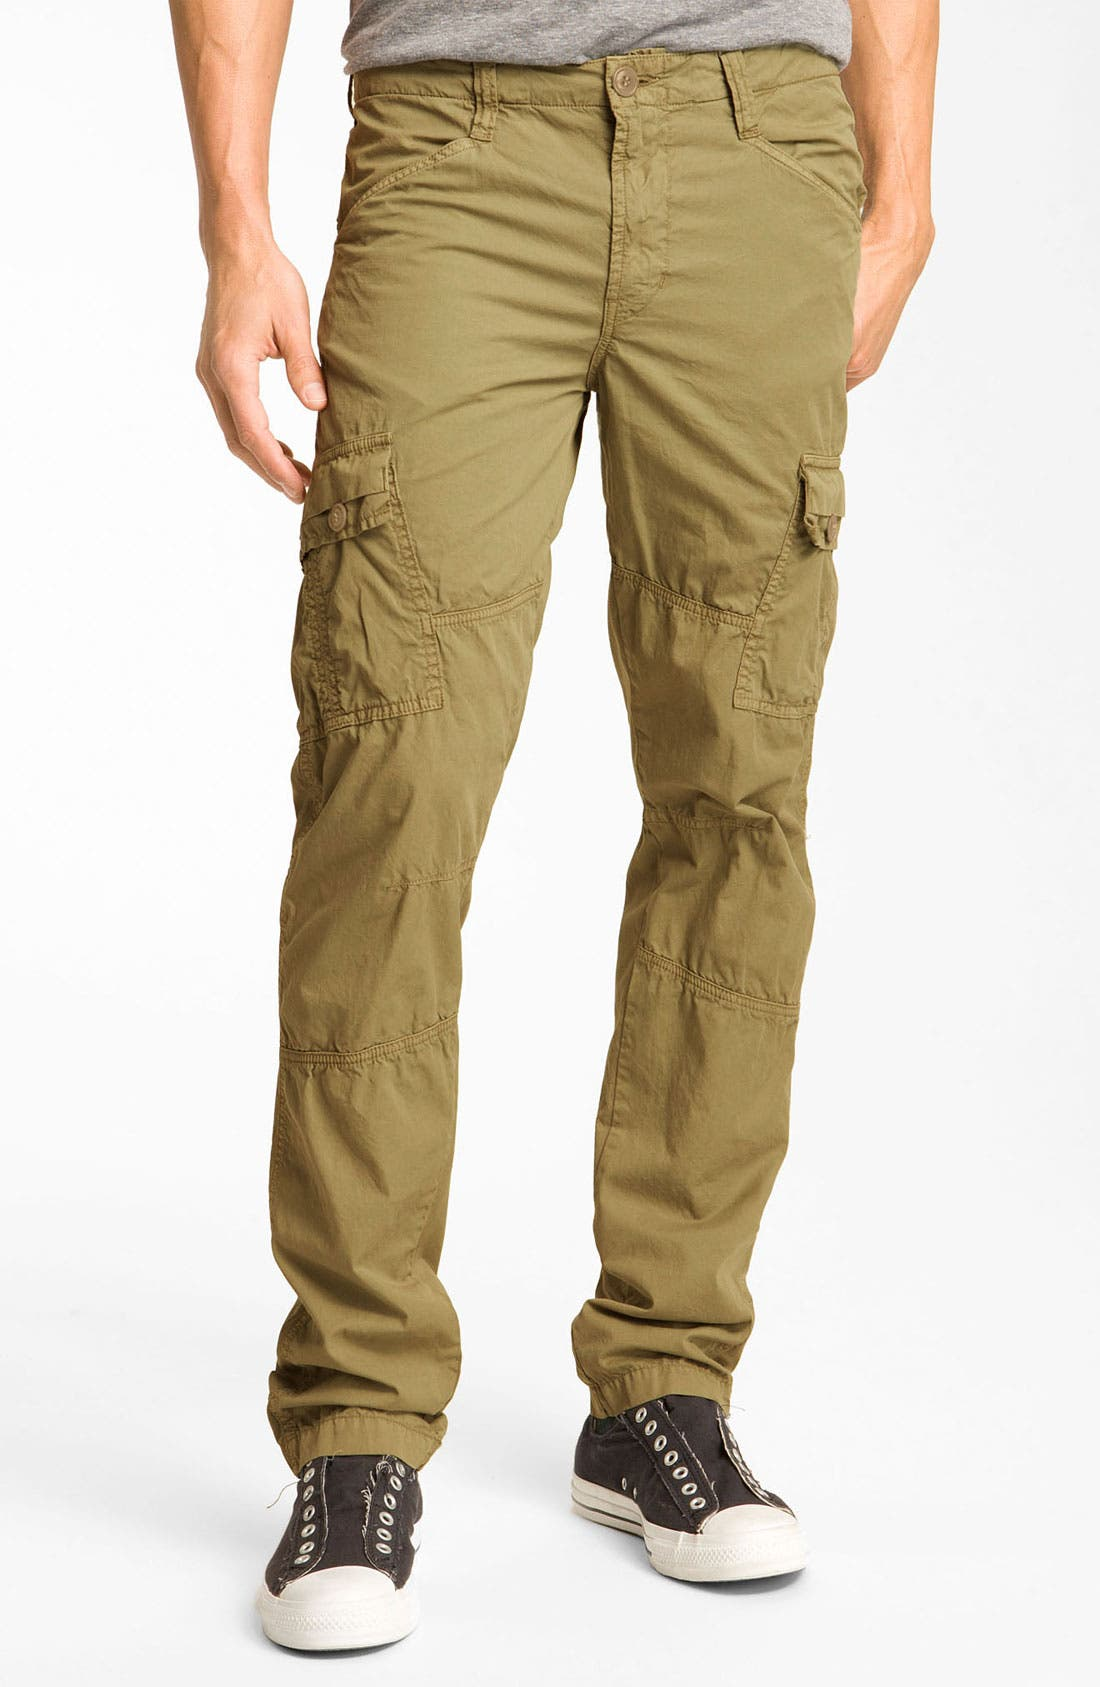 'Trooper' Slim Lightweight Cargo Pants,                             Main thumbnail 1, color,                             247